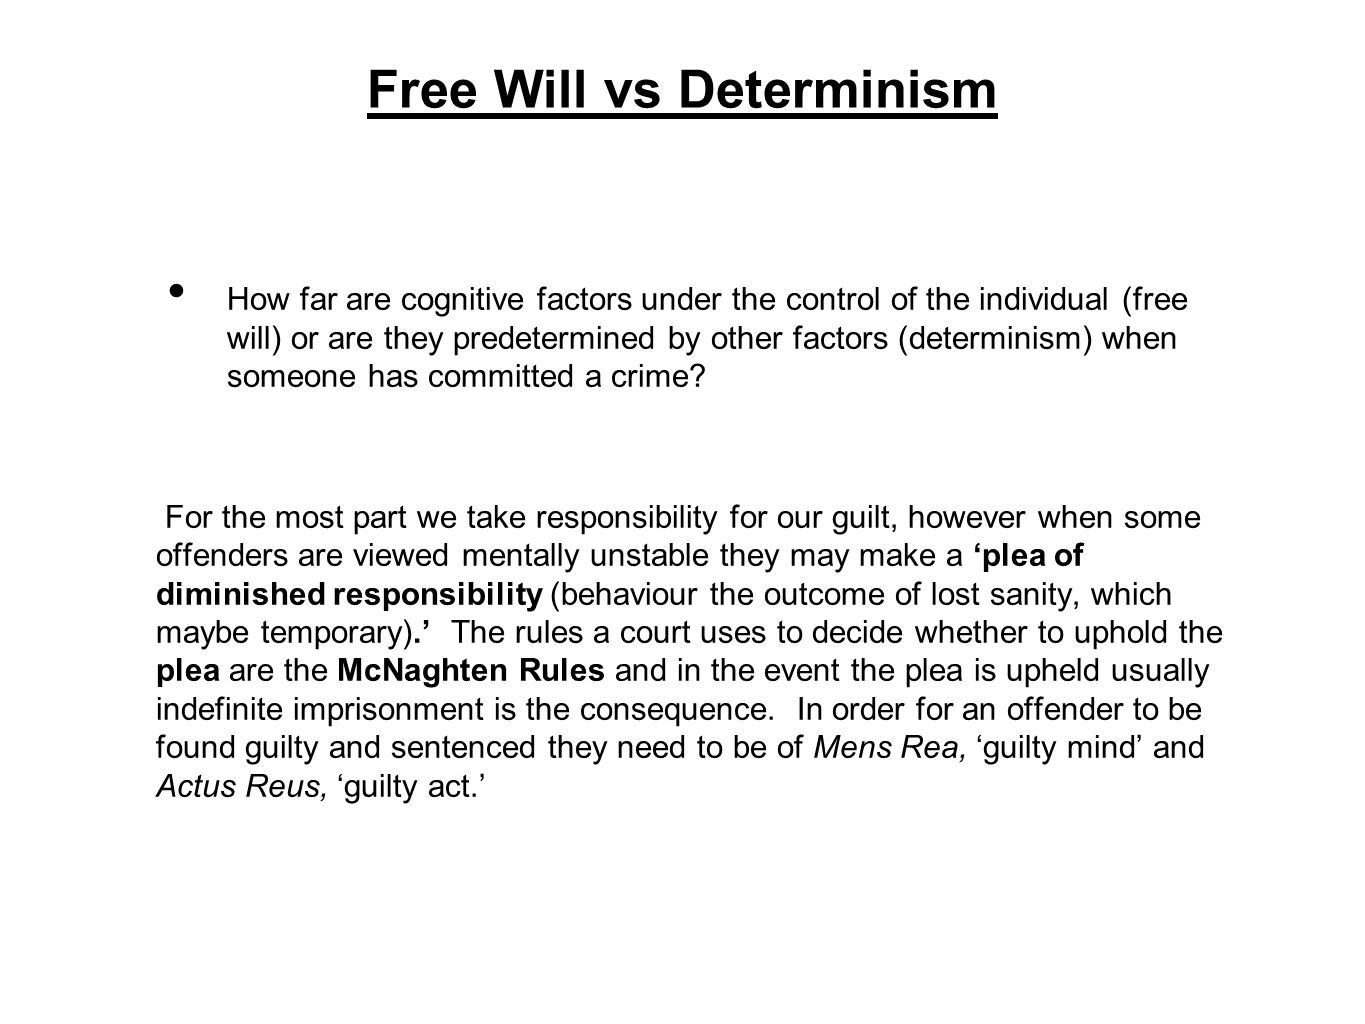 Free Will vs Determinism How far are cognitive factors under the control of the individual (free will) or are they predetermined by other factors (det